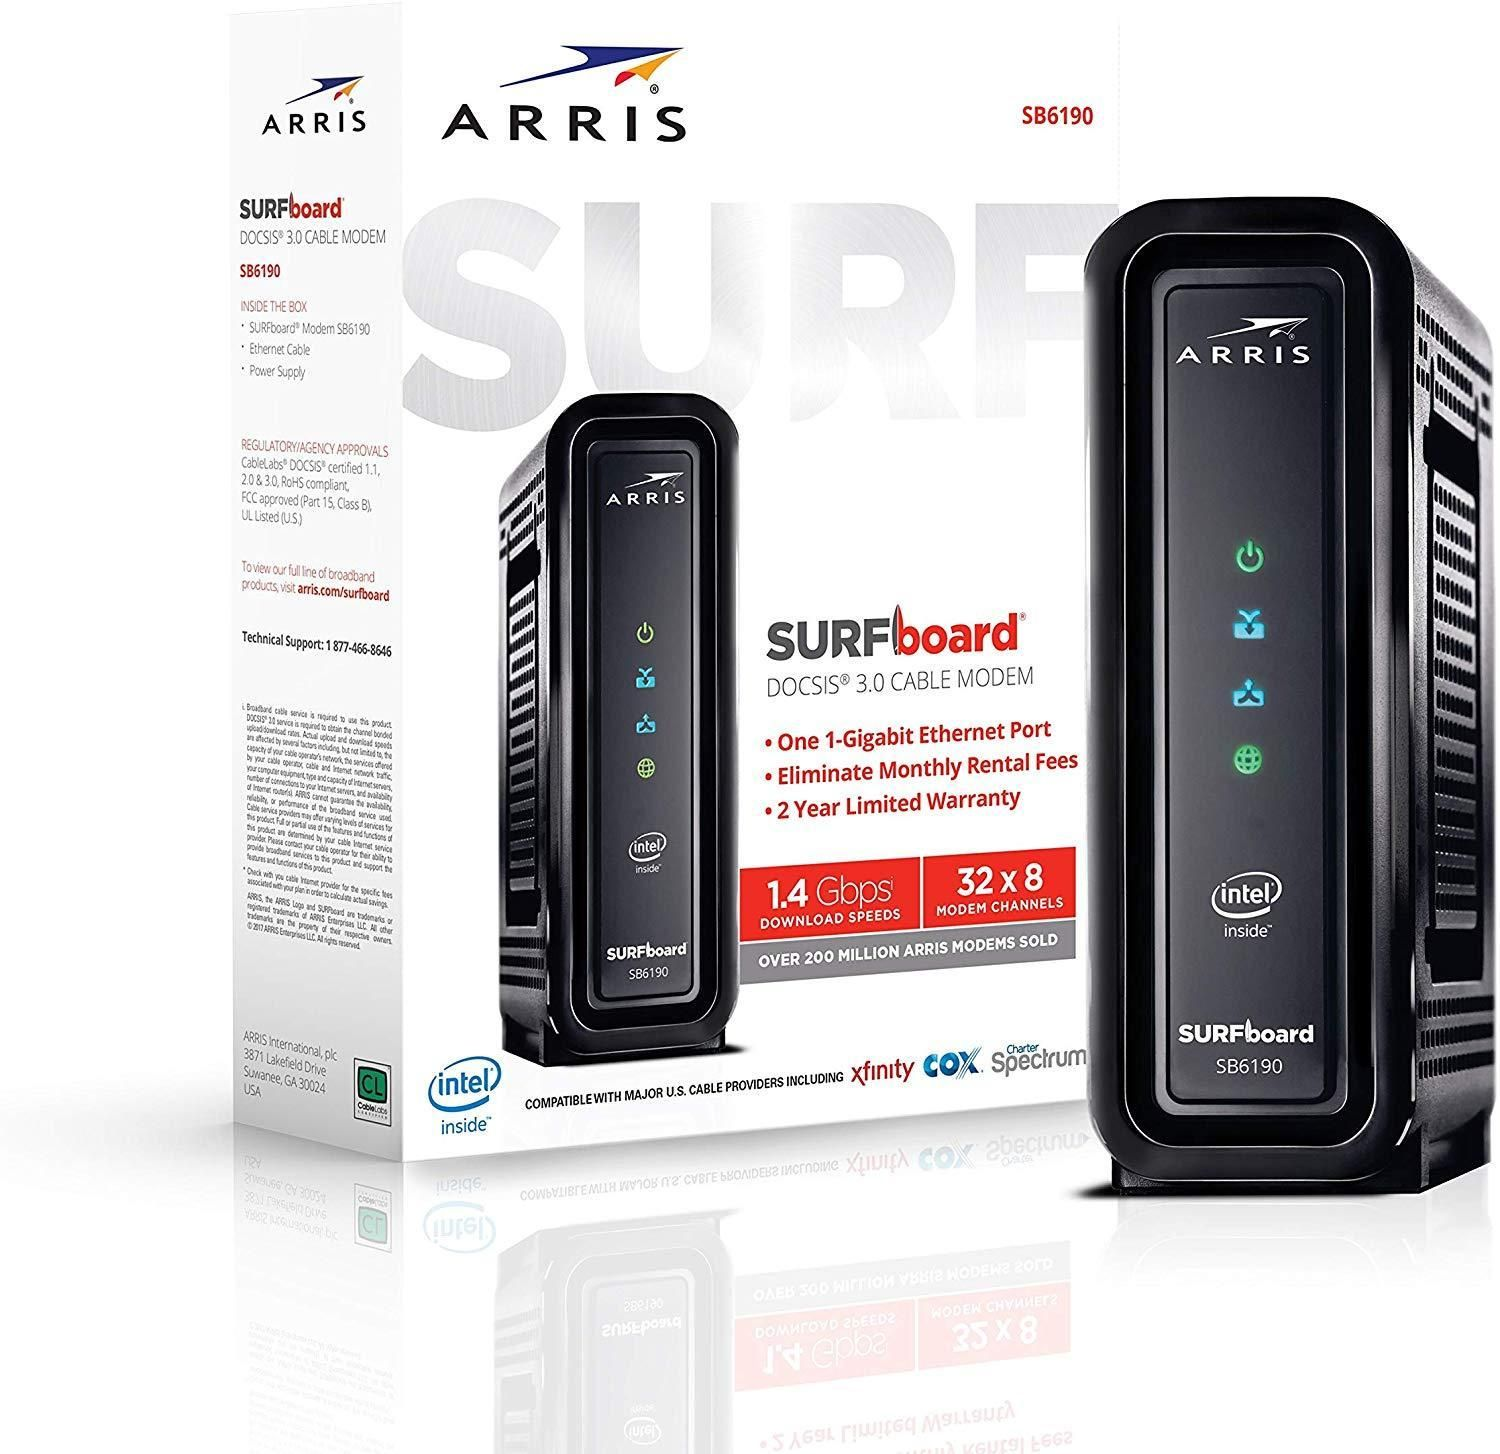 Deals On Twitter Cable Modem Cable Internet Providers Comcast Xfinity